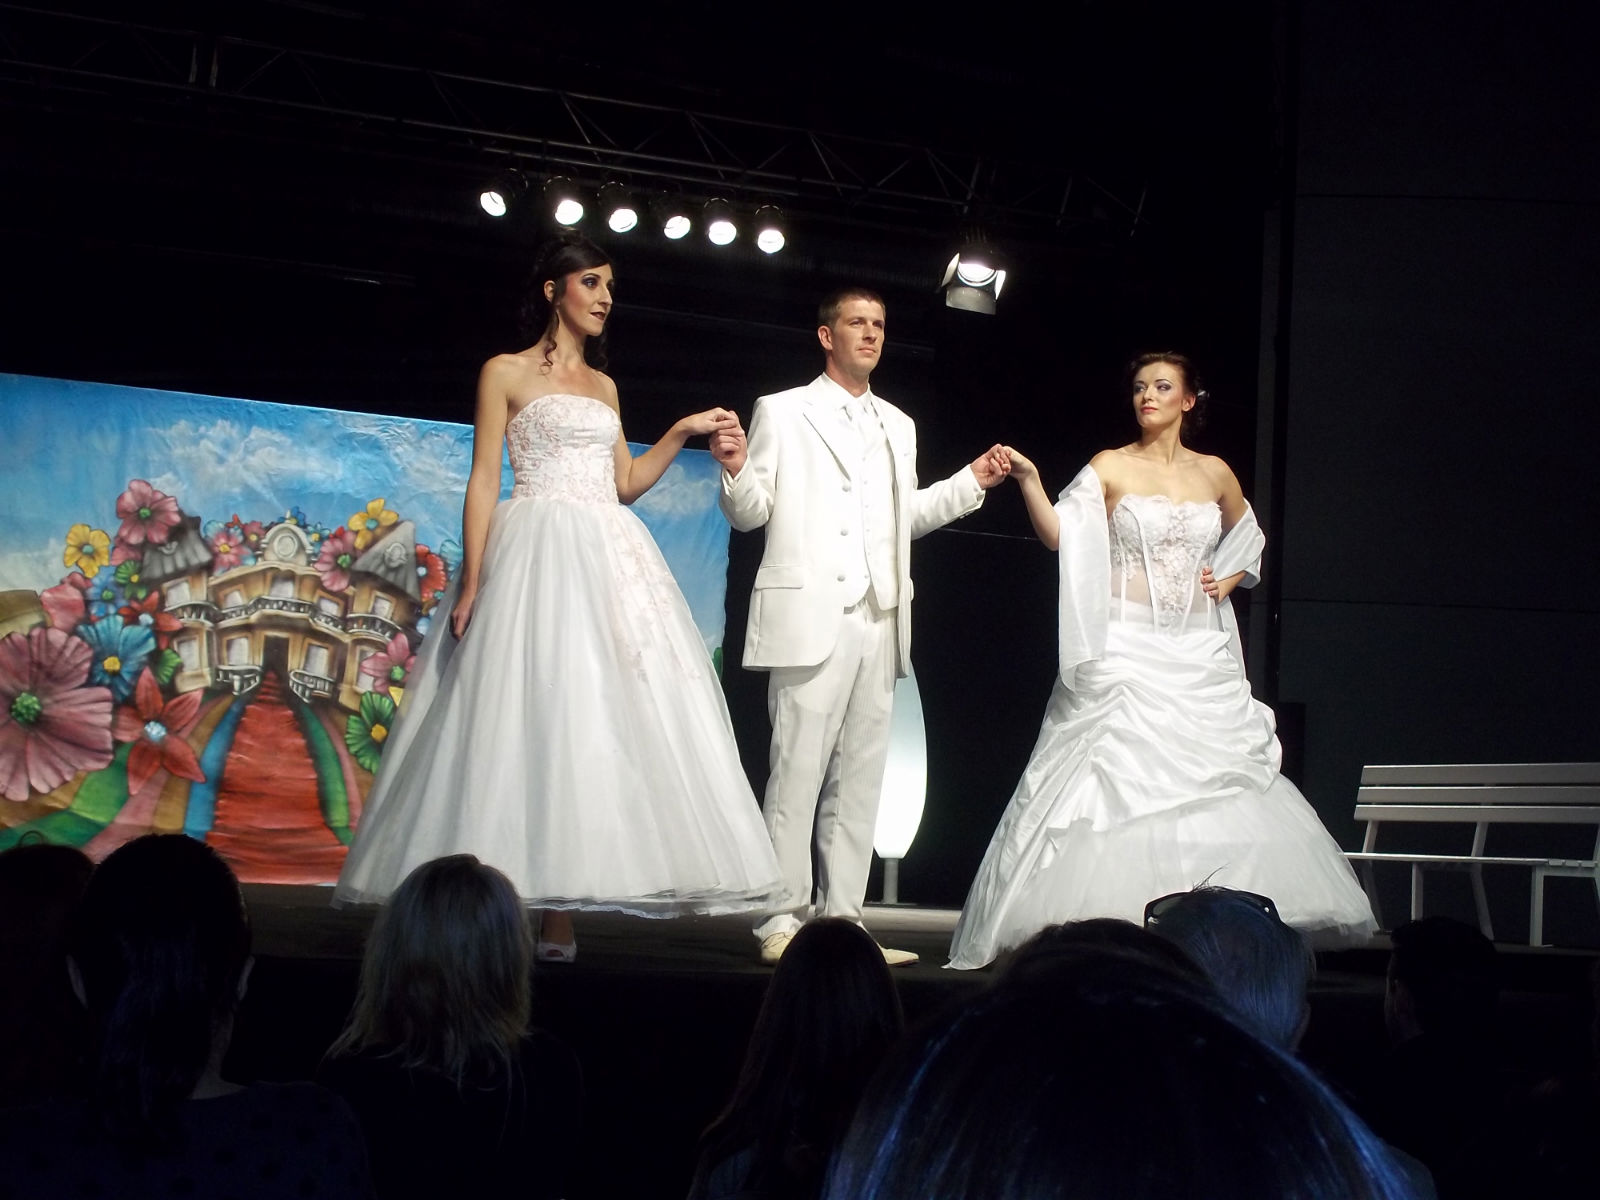 Salon Du Mariage Perpignan Just Another Wordpress Site Page 4